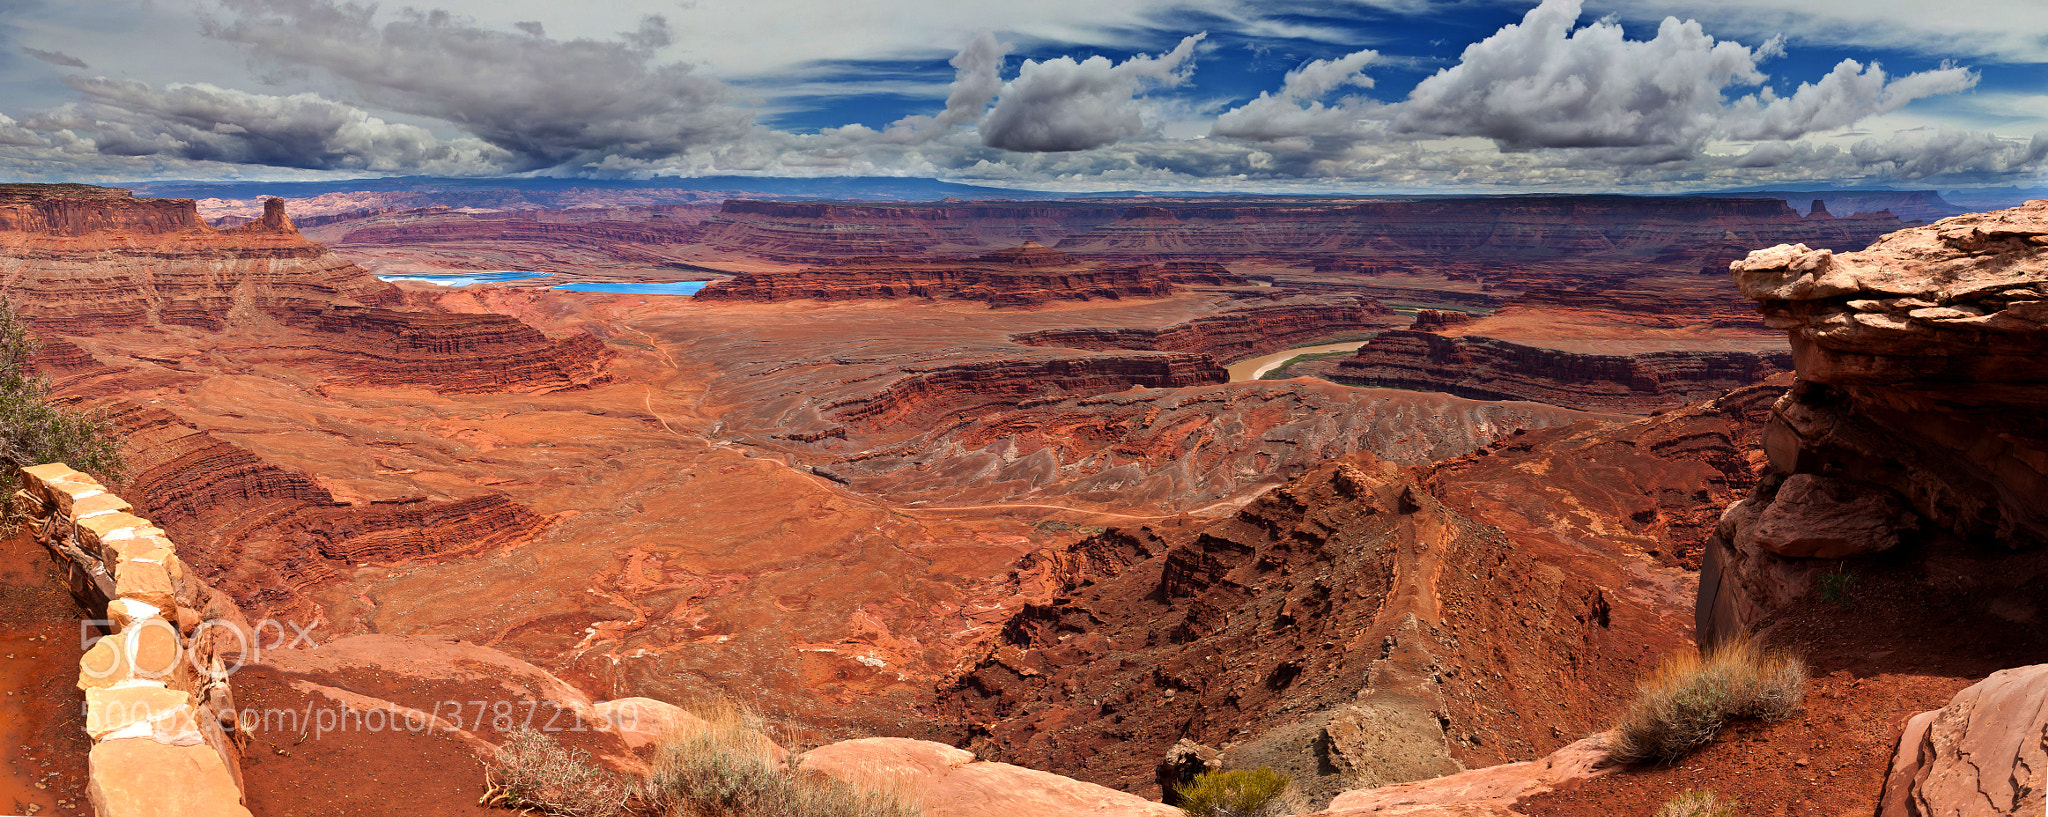 Photograph Dead Horse Point View by Aleksei Sarkisov on 500px